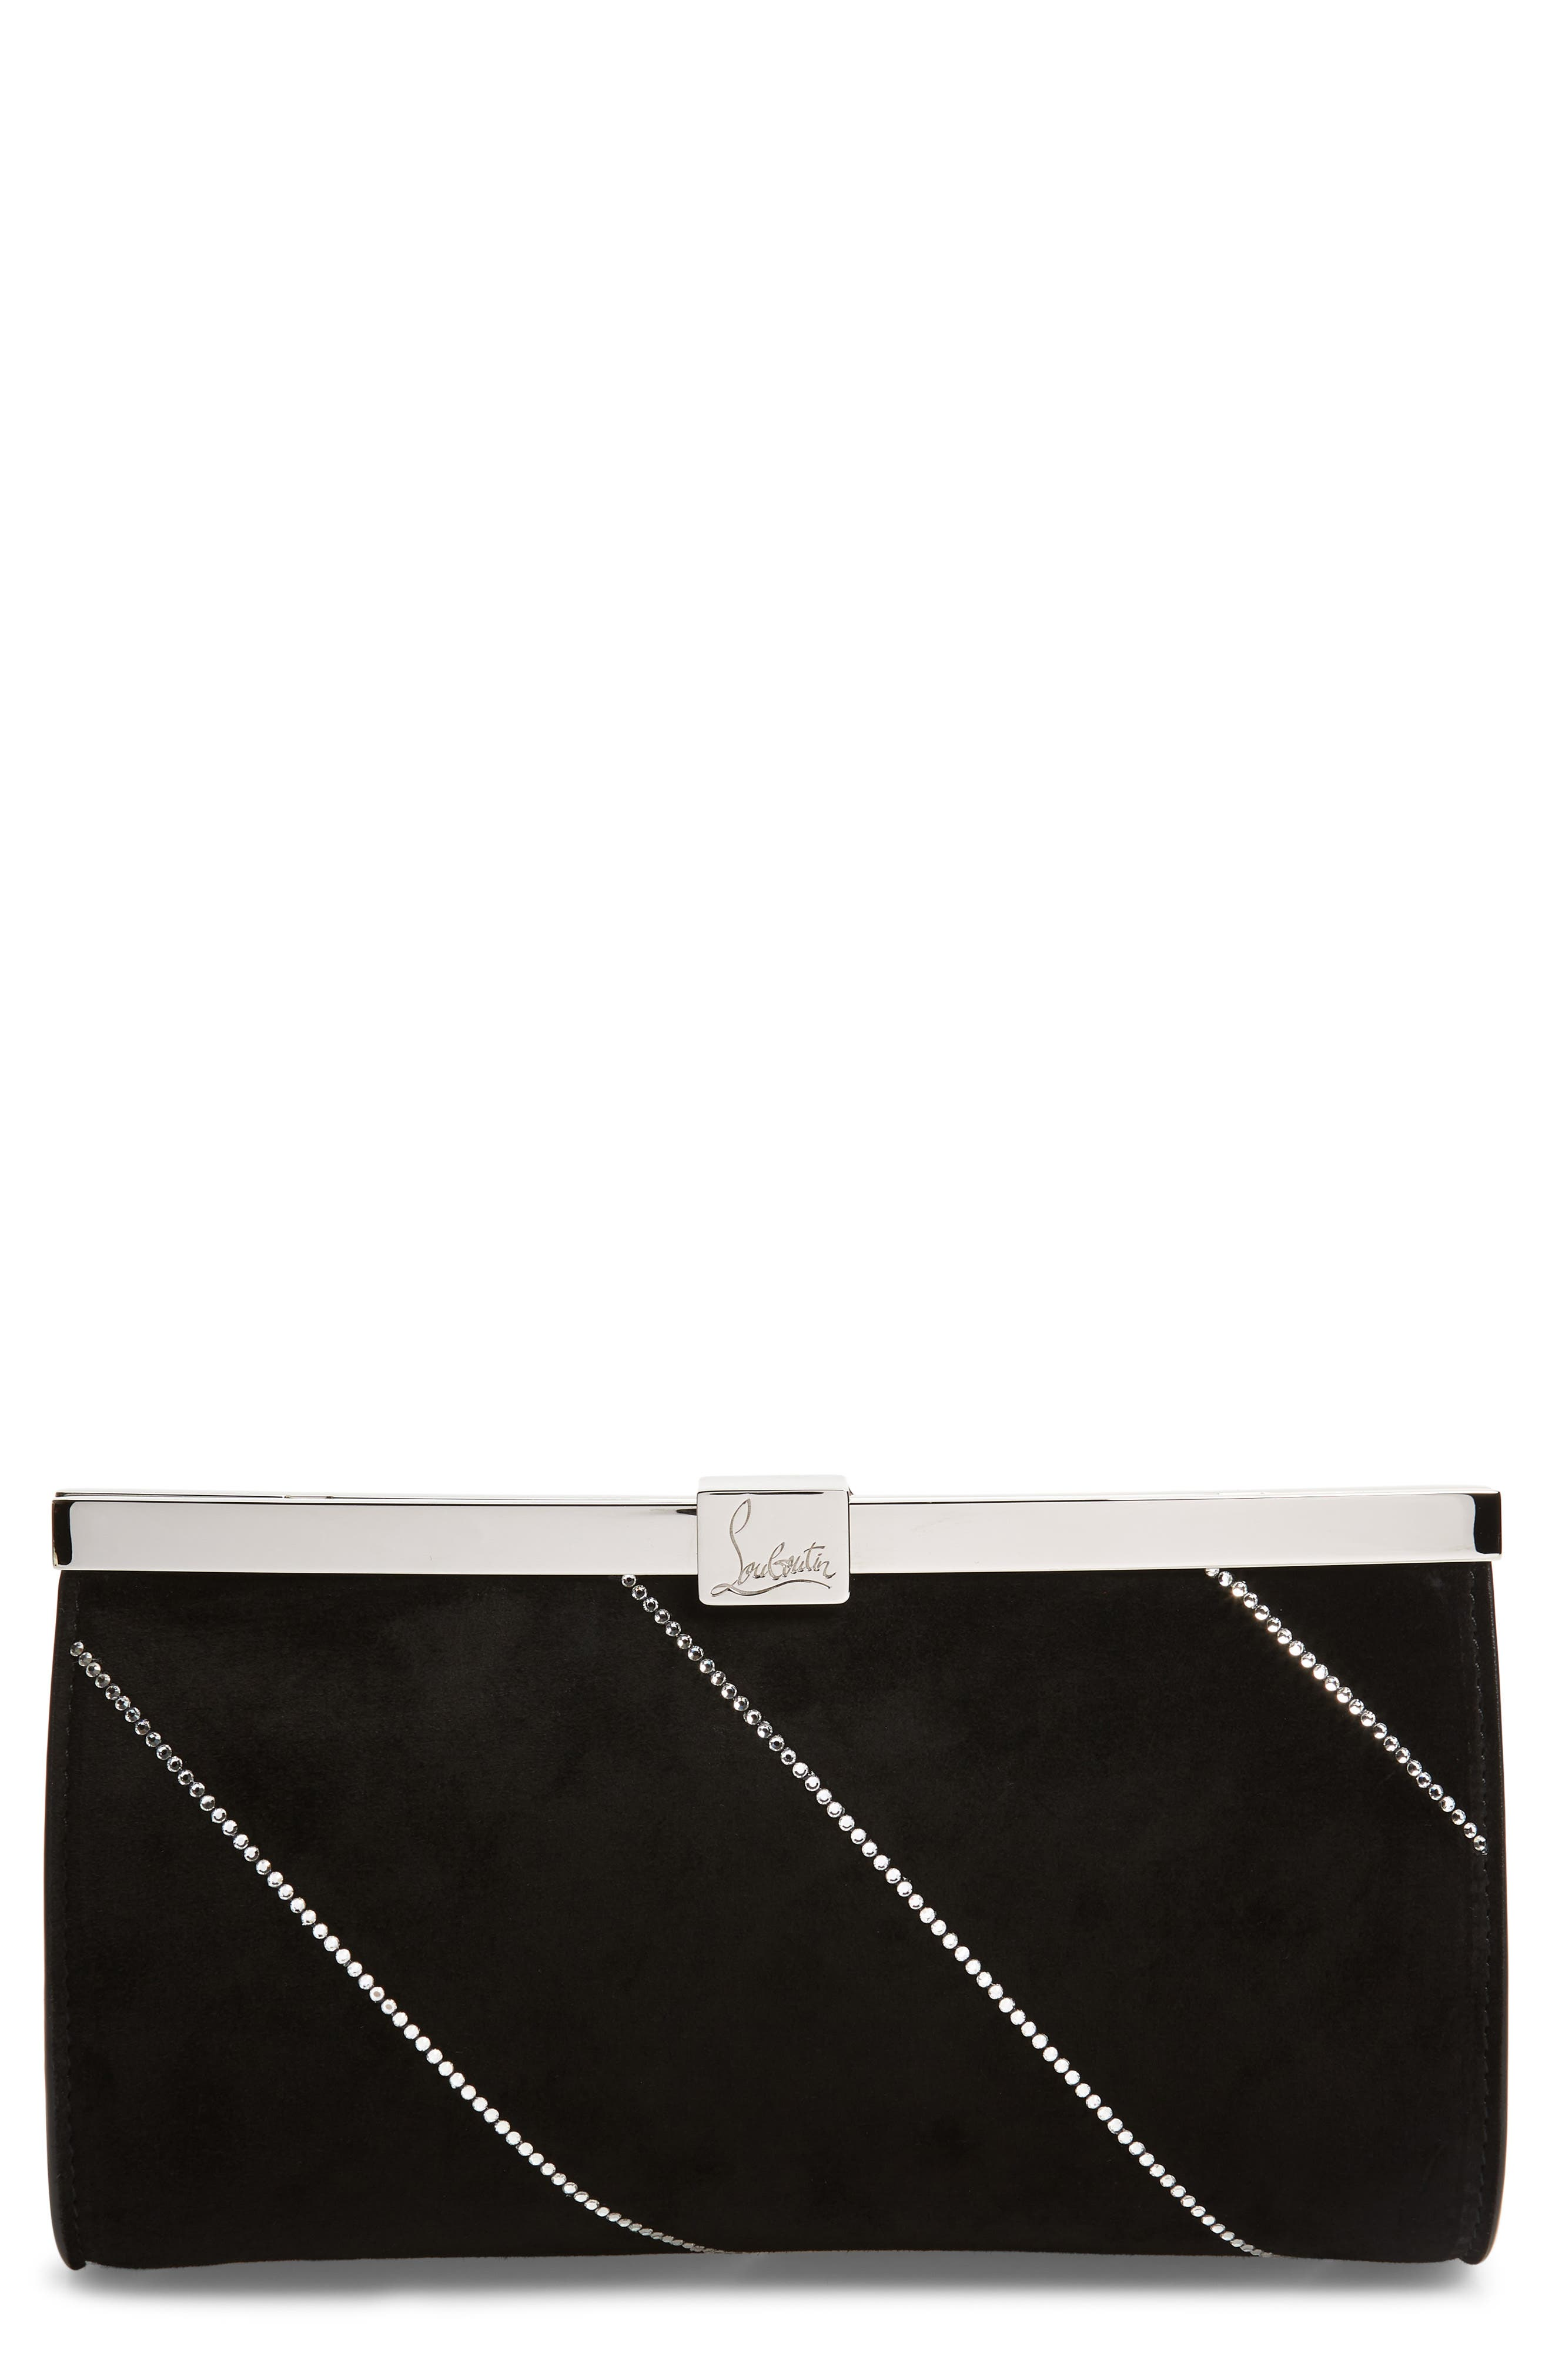 Christian Louboutin Small Palmette Embellished Clutch   Nordstrom